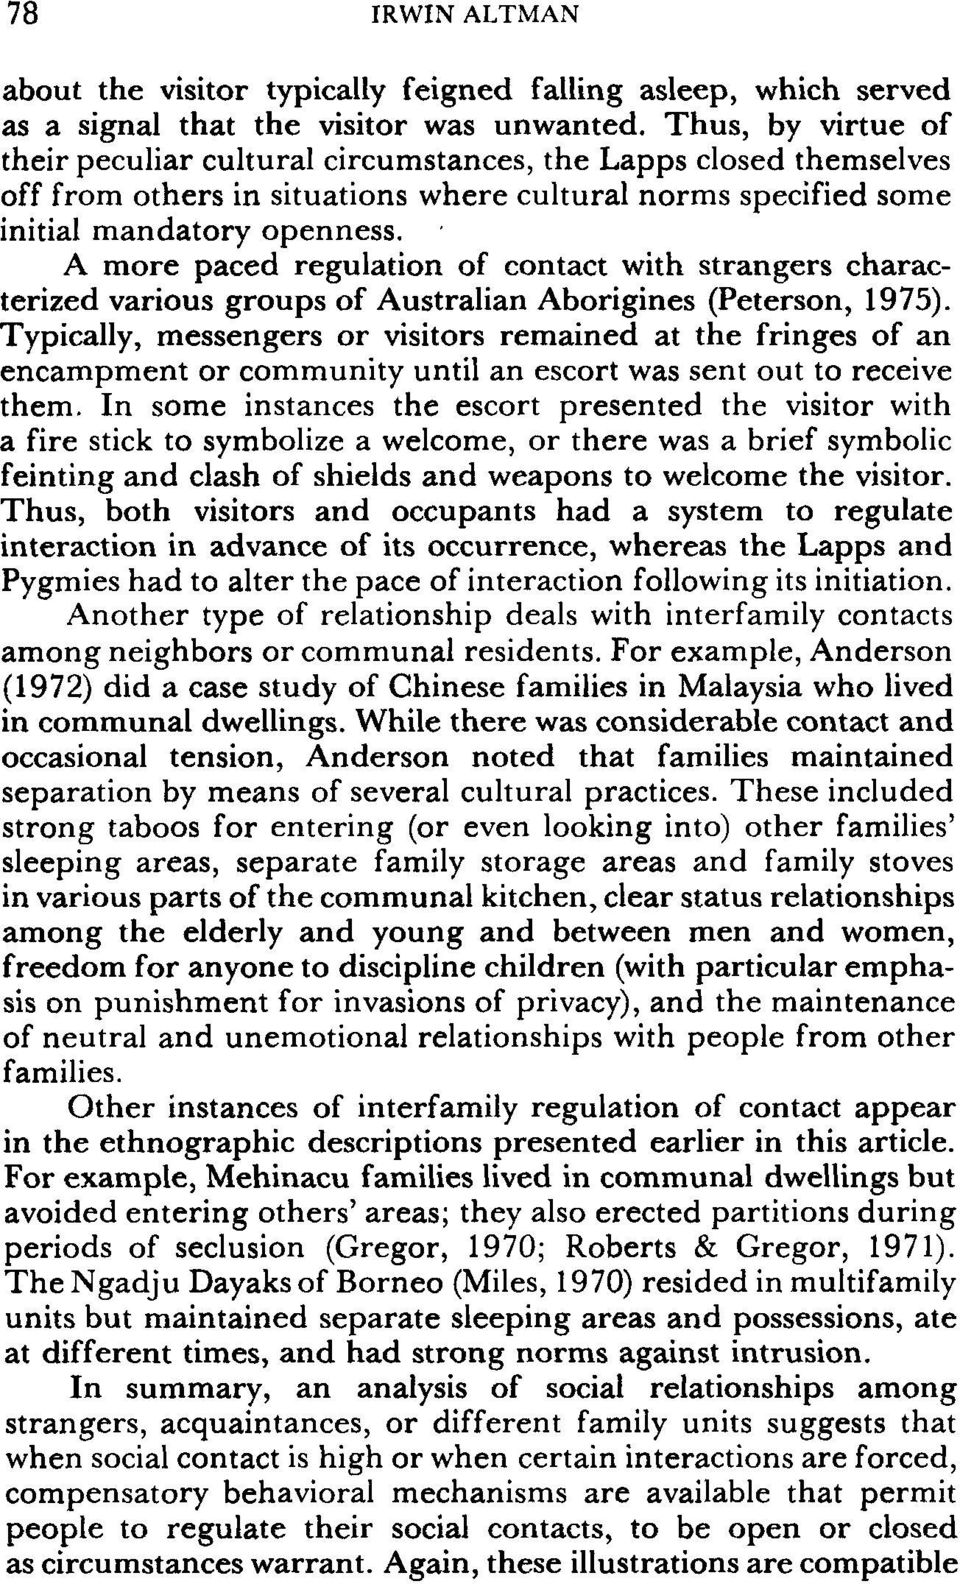 I A more paced regulation of contact with strangers characterized various groups of Australian Aborigines (Peterson, 1975).